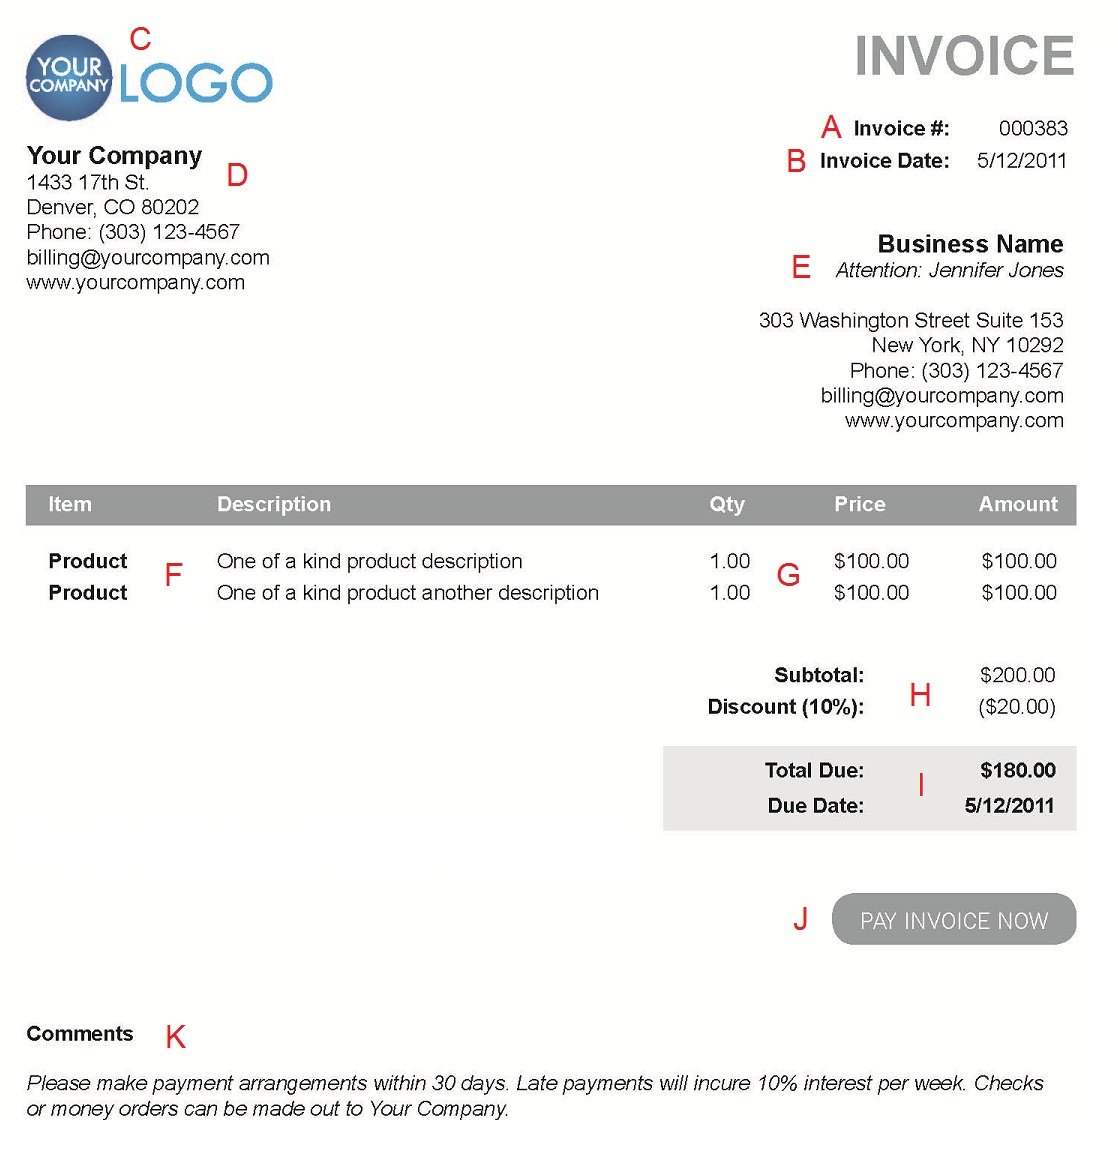 Aaaaeroincus  Stunning The  Different Sections Of An Electronic Payment Invoice With Foxy A  With Astounding Invoice Sample Format Also Best App For Invoicing In Addition Proforma Invoice Template Uk And Print Free Invoices As Well As Invoice Template Ireland Additionally Rogers Invoice From Paysimplecom With Aaaaeroincus  Foxy The  Different Sections Of An Electronic Payment Invoice With Astounding A  And Stunning Invoice Sample Format Also Best App For Invoicing In Addition Proforma Invoice Template Uk From Paysimplecom